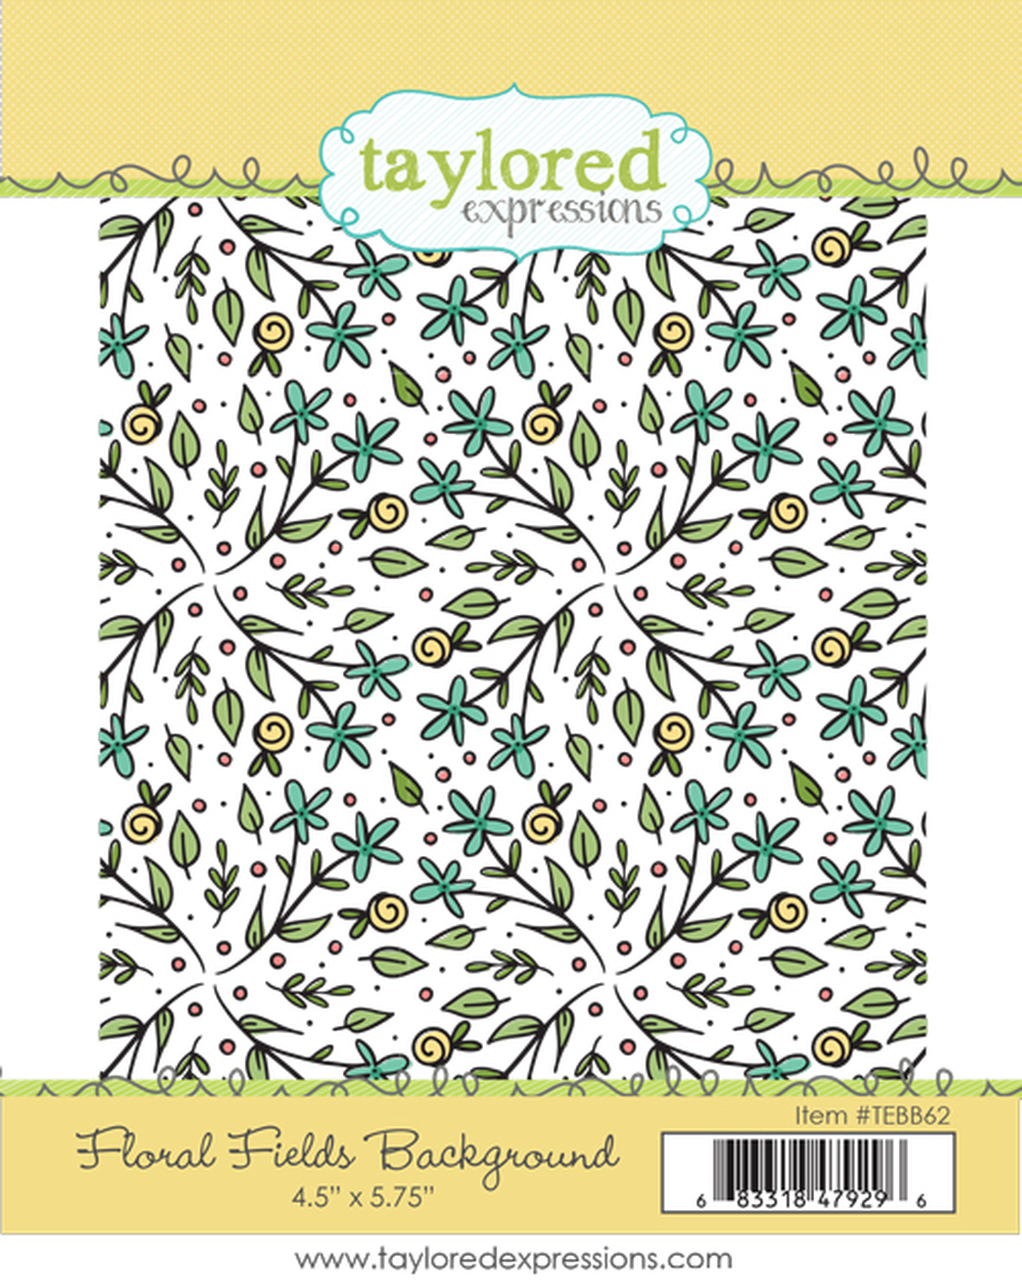 Taylored Expression - Floral Fields Background